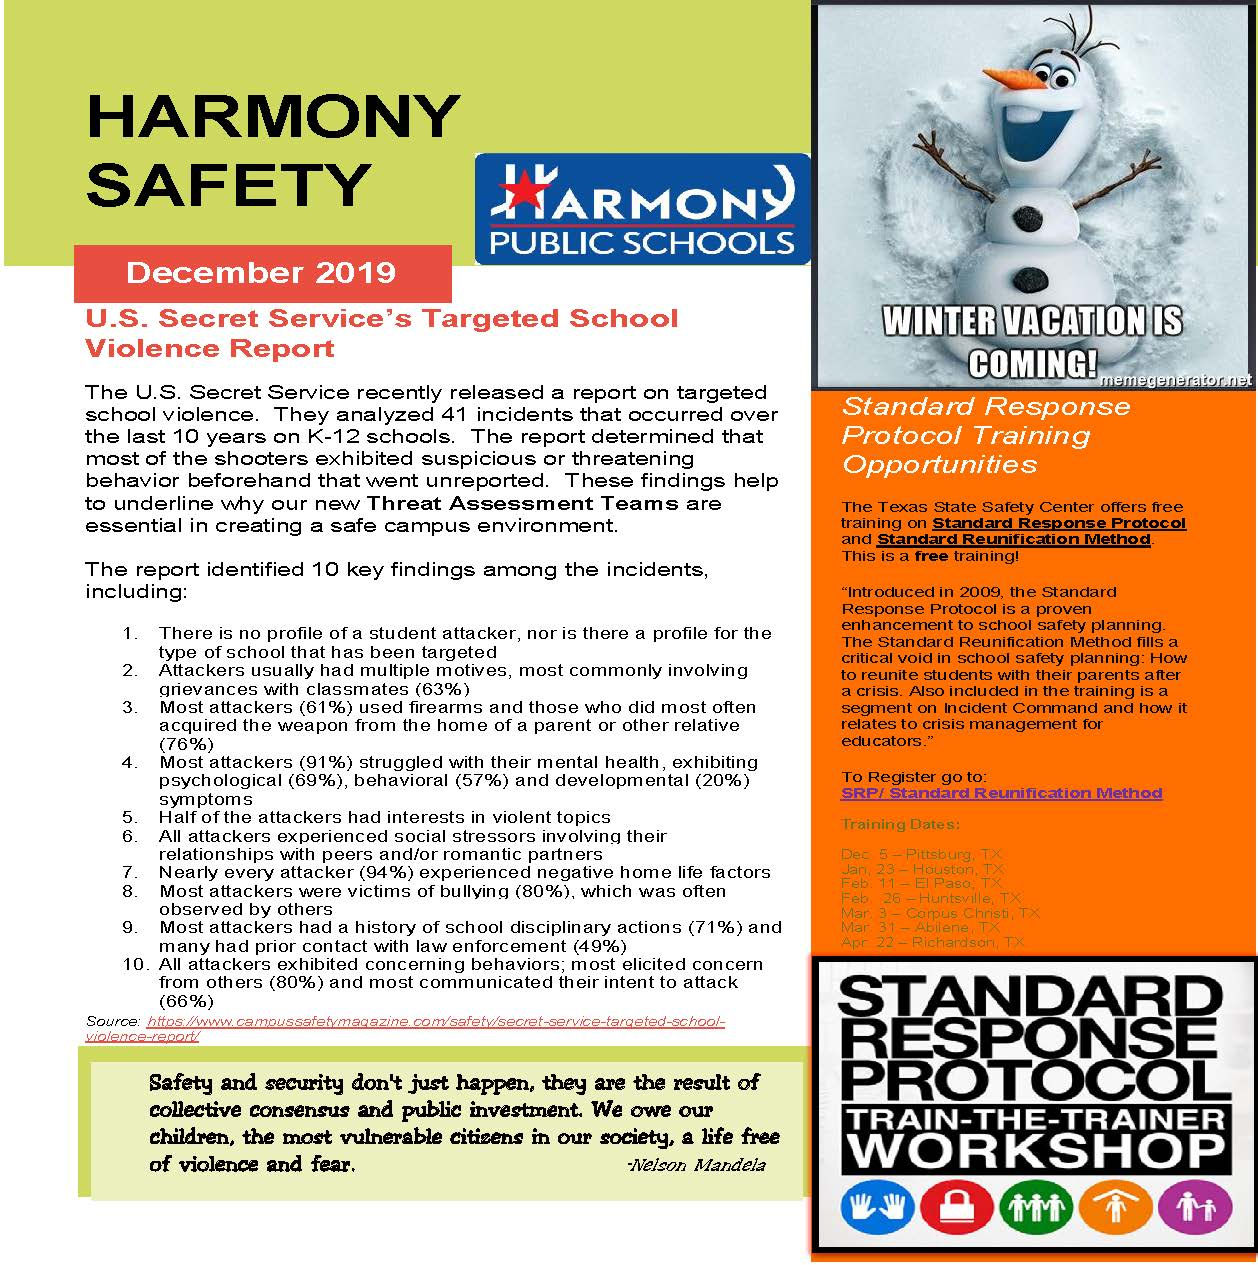 An image of page two of the Harmony Safety Newsletter for December 2019